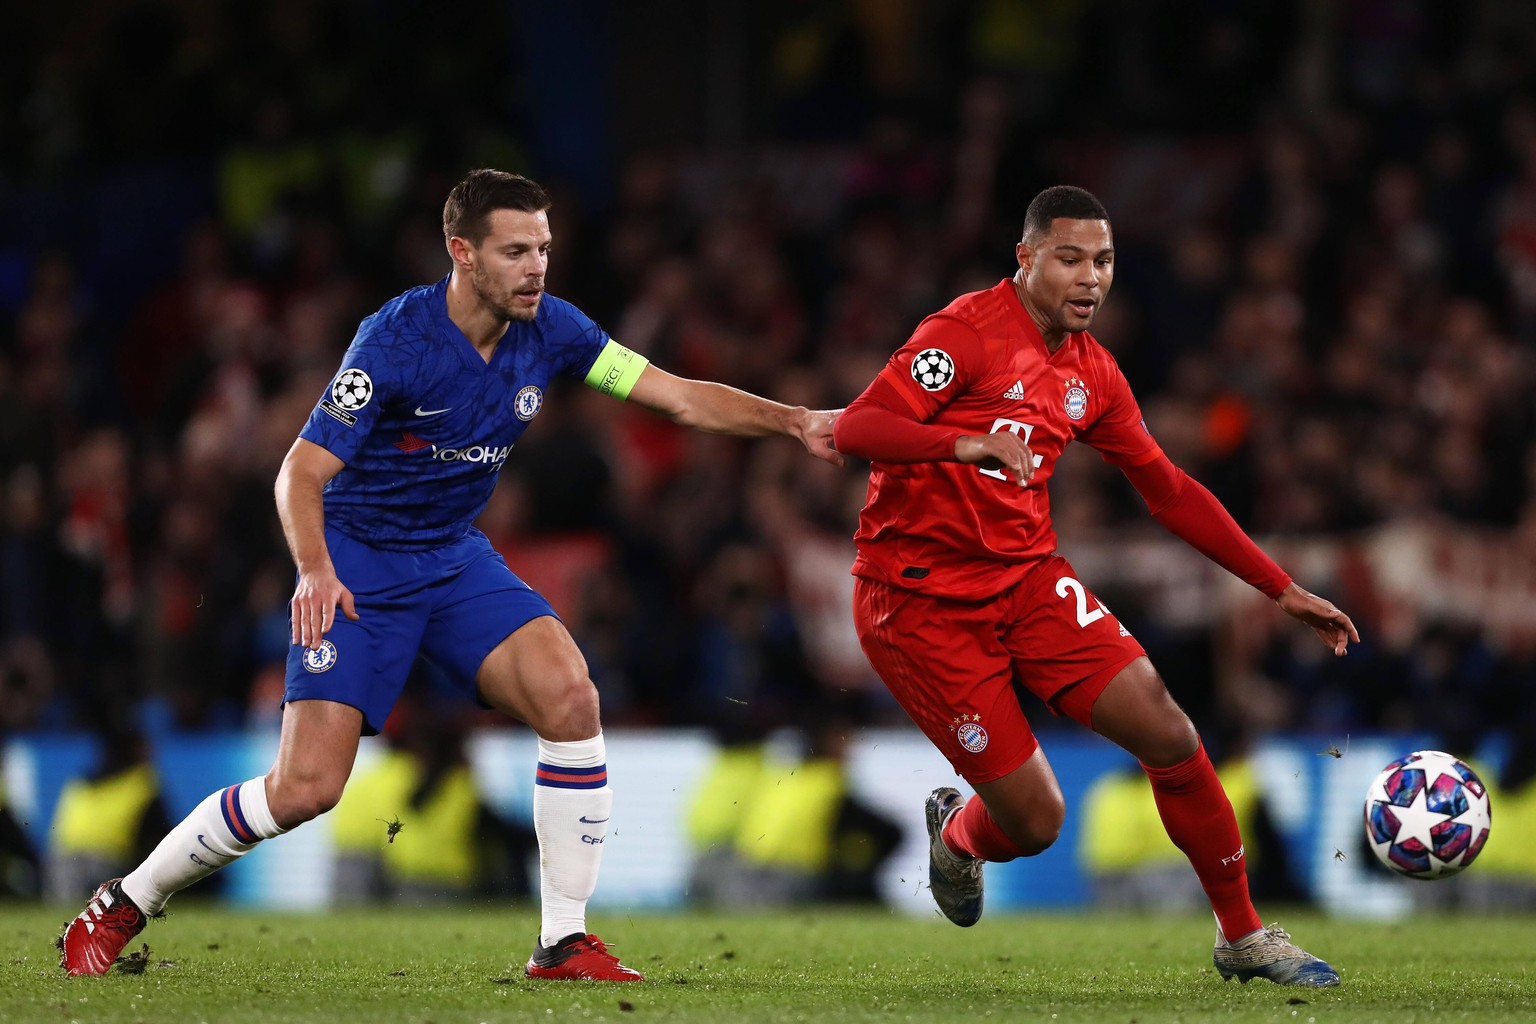 February 25, 2020, London, United Kingdom: Serge Gnabry of Bayern Munich and Cesar Azpilicueta of Chelsea in action during the UEFA Champions League Round 16 First Leg match between Chelsea and Bayern Munich at Stamford Bridge..Final Score Chelsea 0:3 Bayern Munich. London United Kingdom - ZUMAs197 20200225zabs197138 Copyright: xRichardxCalverx